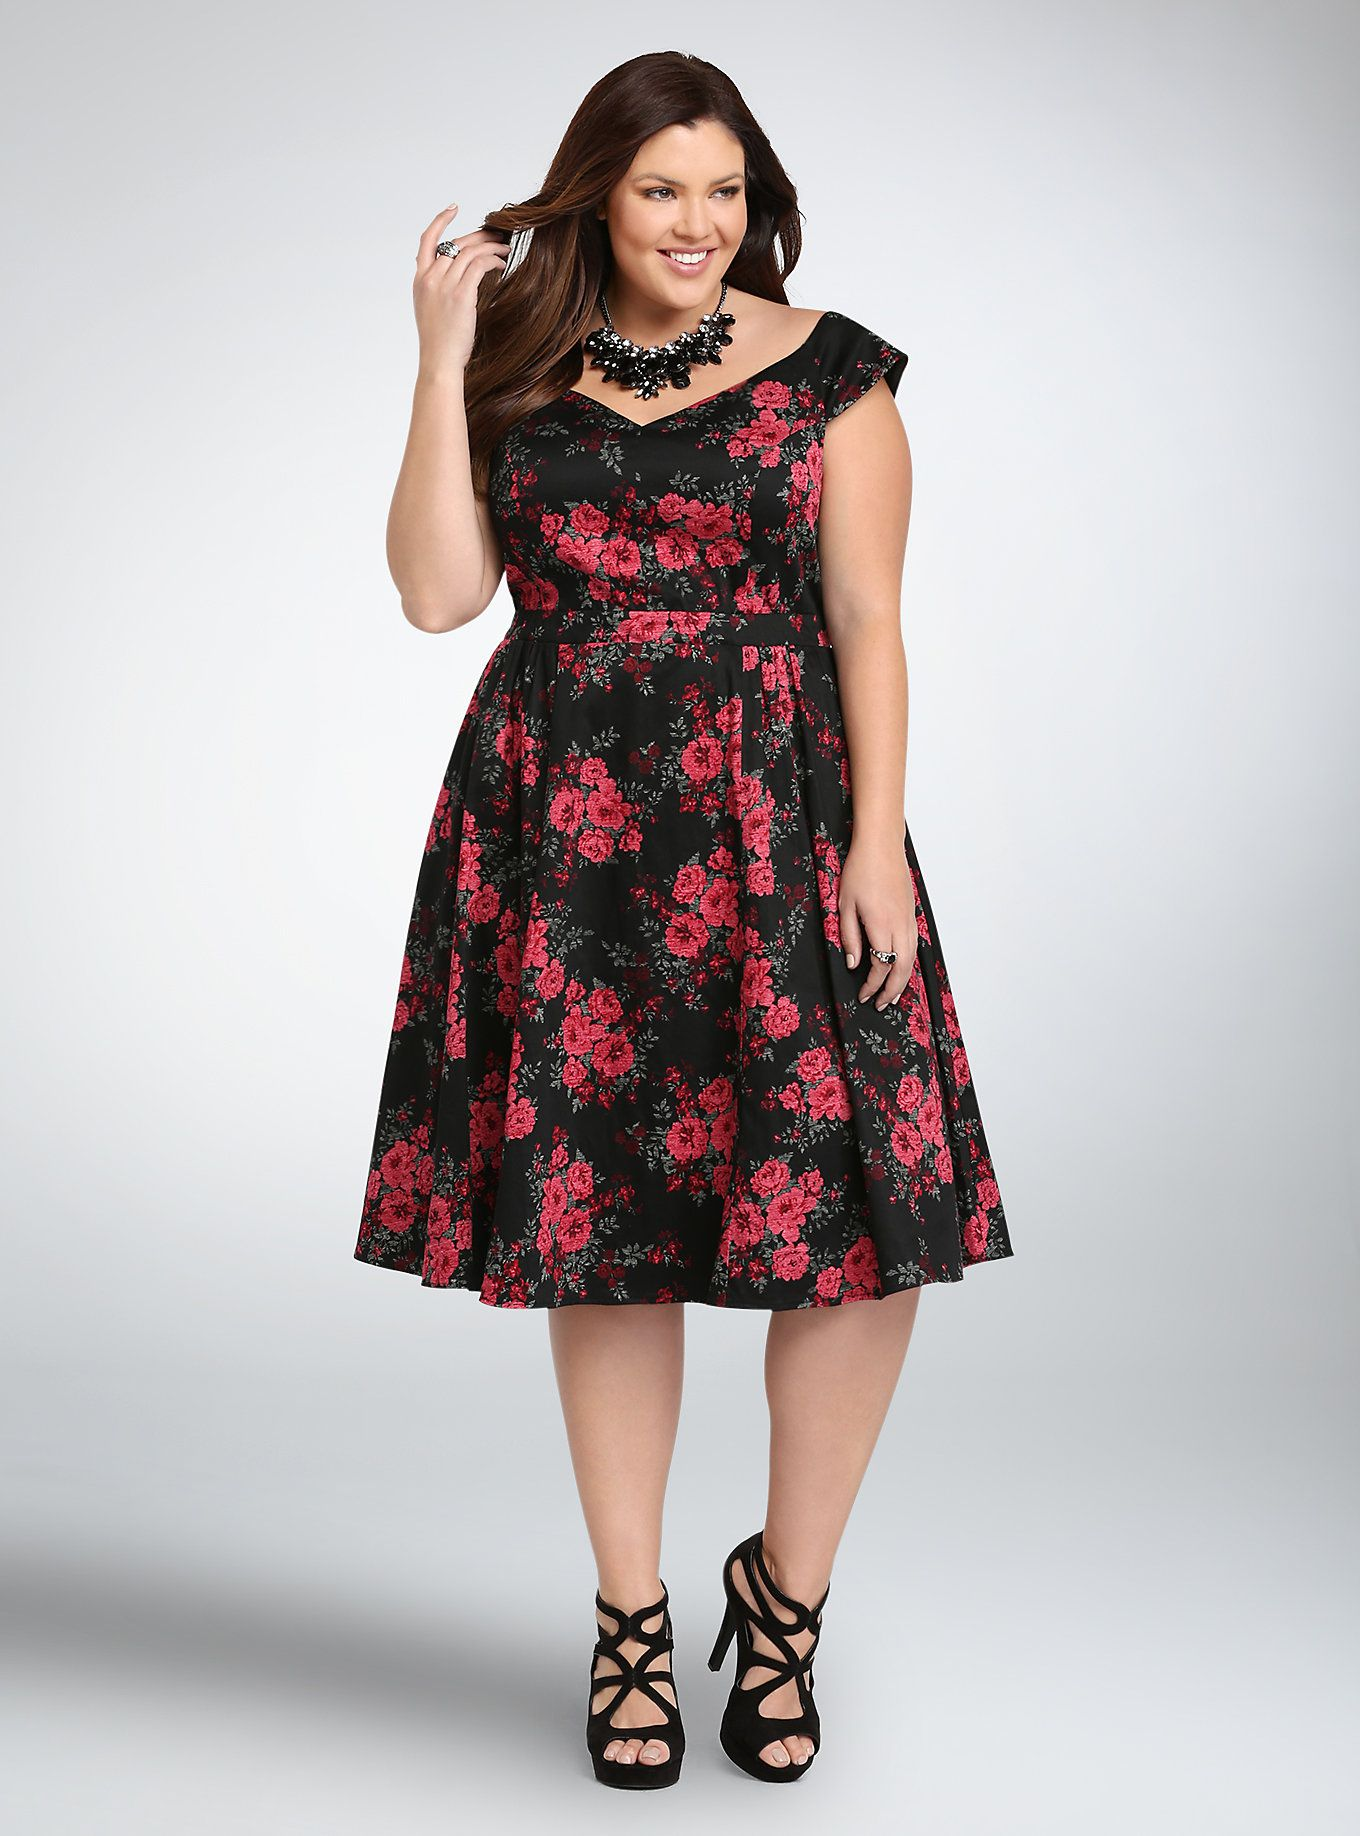 Floral Off the Shoulder Swing Dress | Clothes | Plus size ...